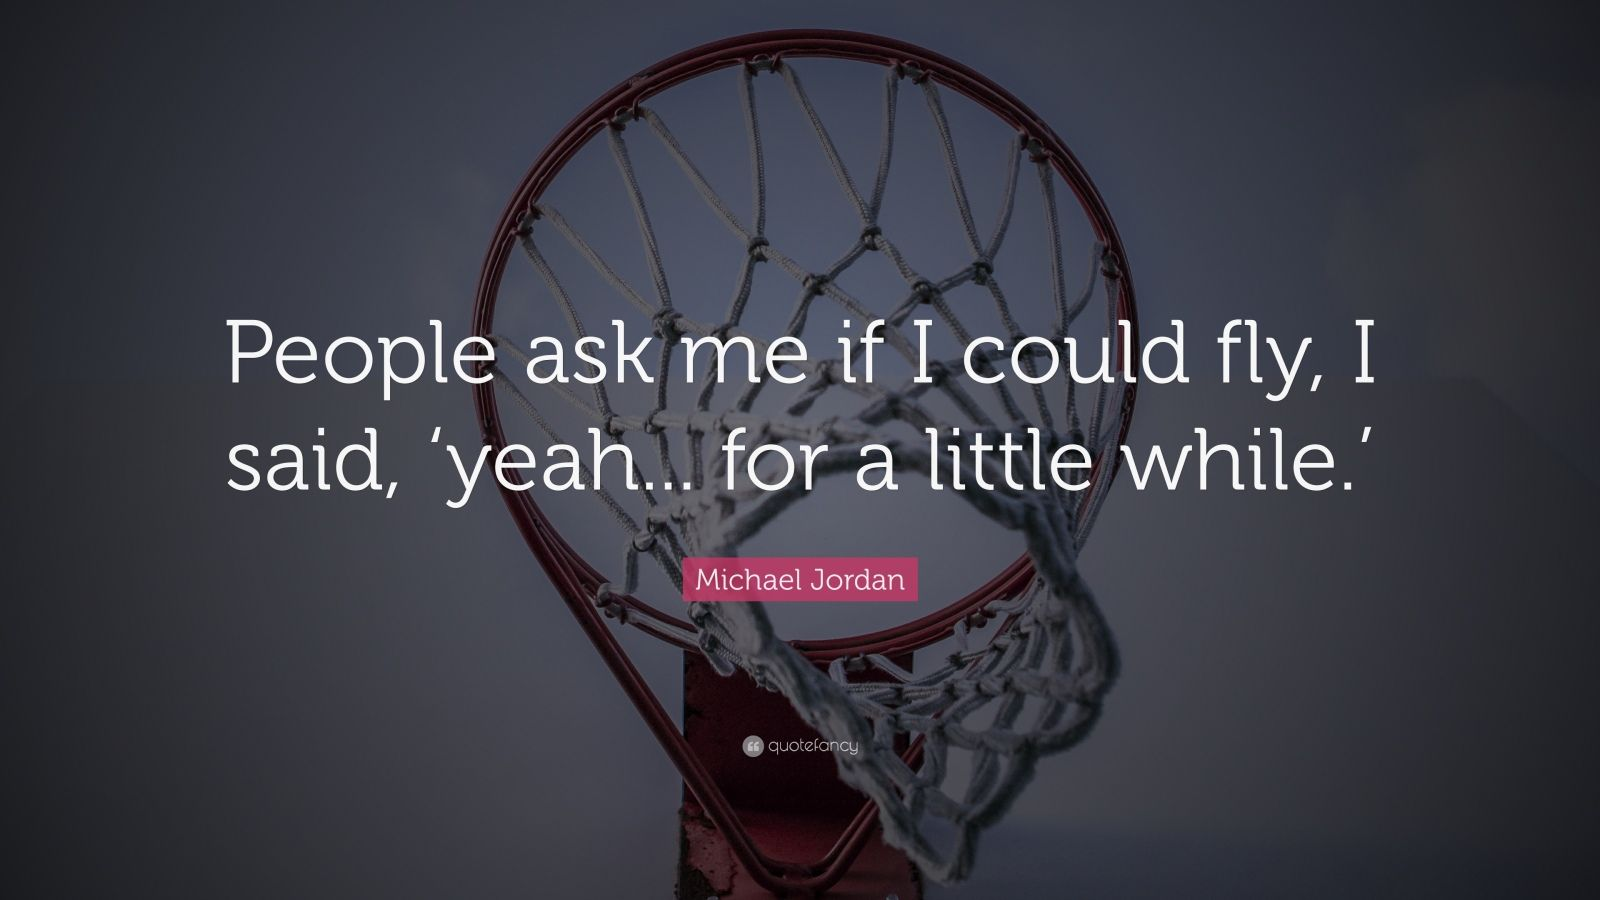 """Michael Jordan Quote: """"People ask me if I could fly, I said, 'yeah... for a little while.'"""""""